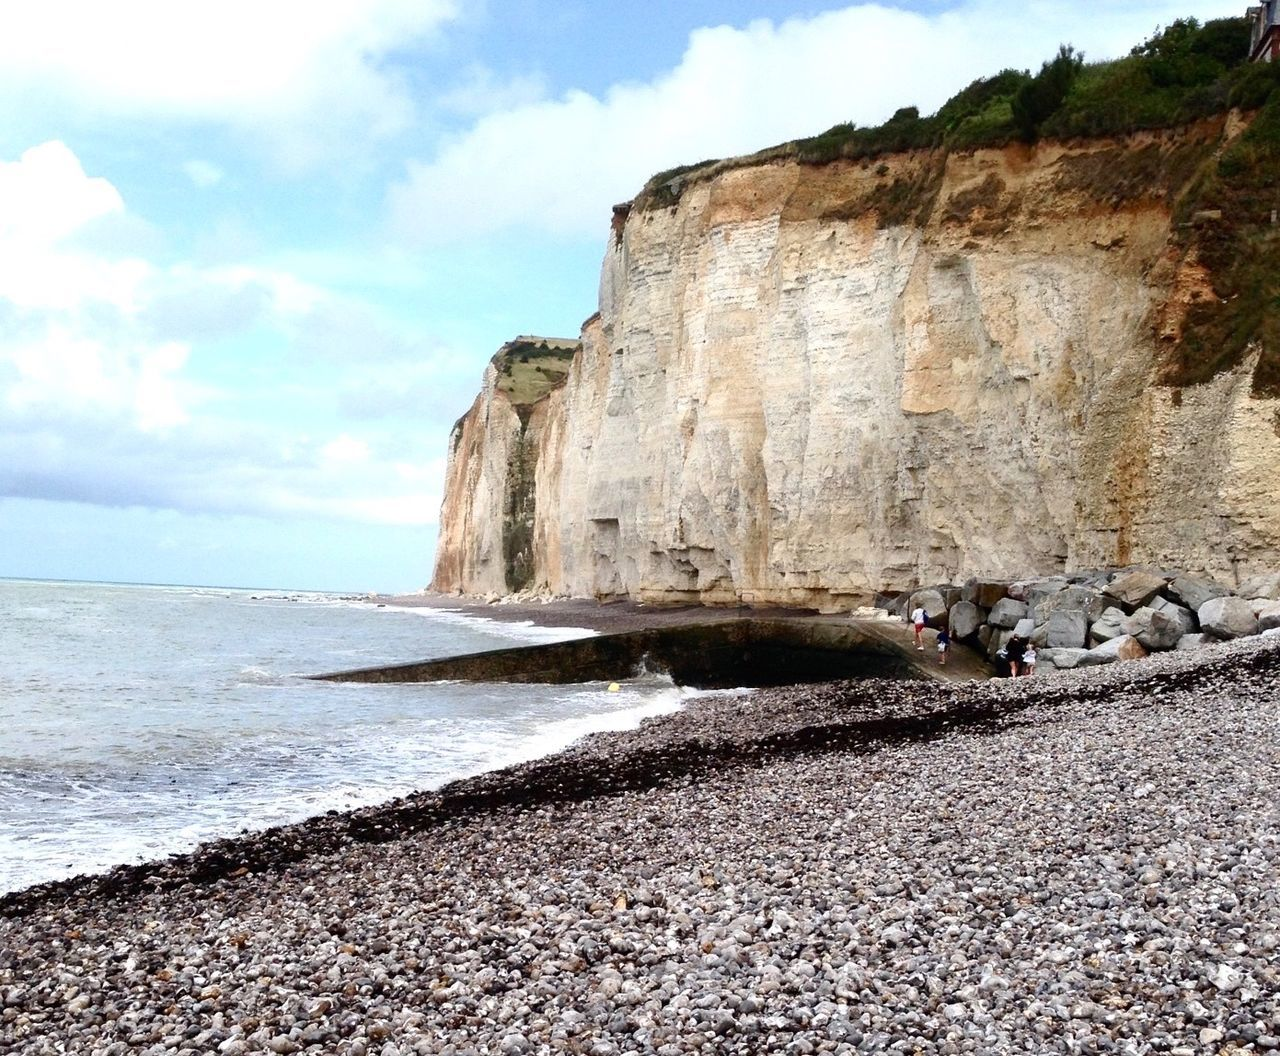 Normandy Beach Cliffsandsea Region Of The Impressionist Painter Sea View Sky And Clouds